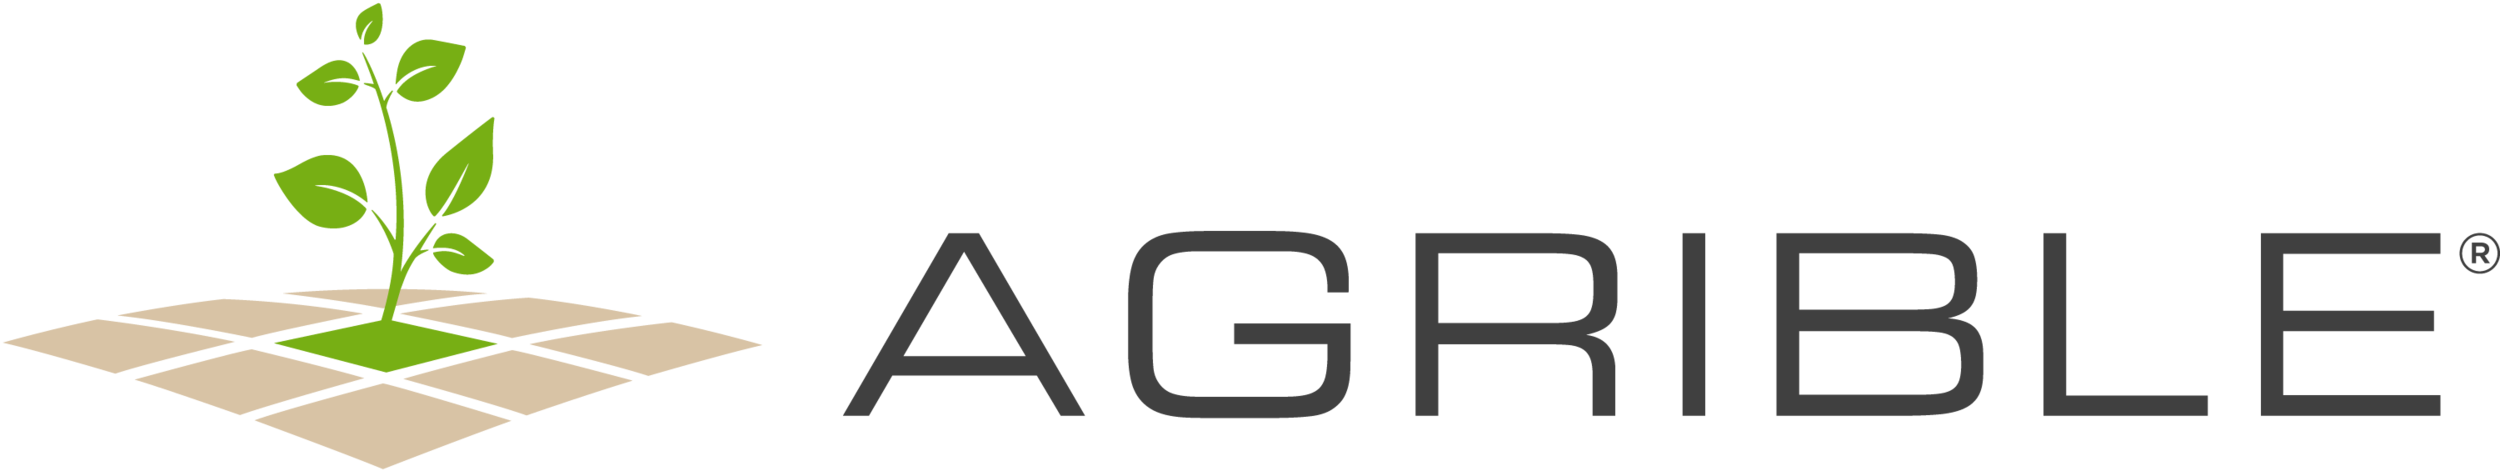 Agrible_Logo_Horizontal_Color.png